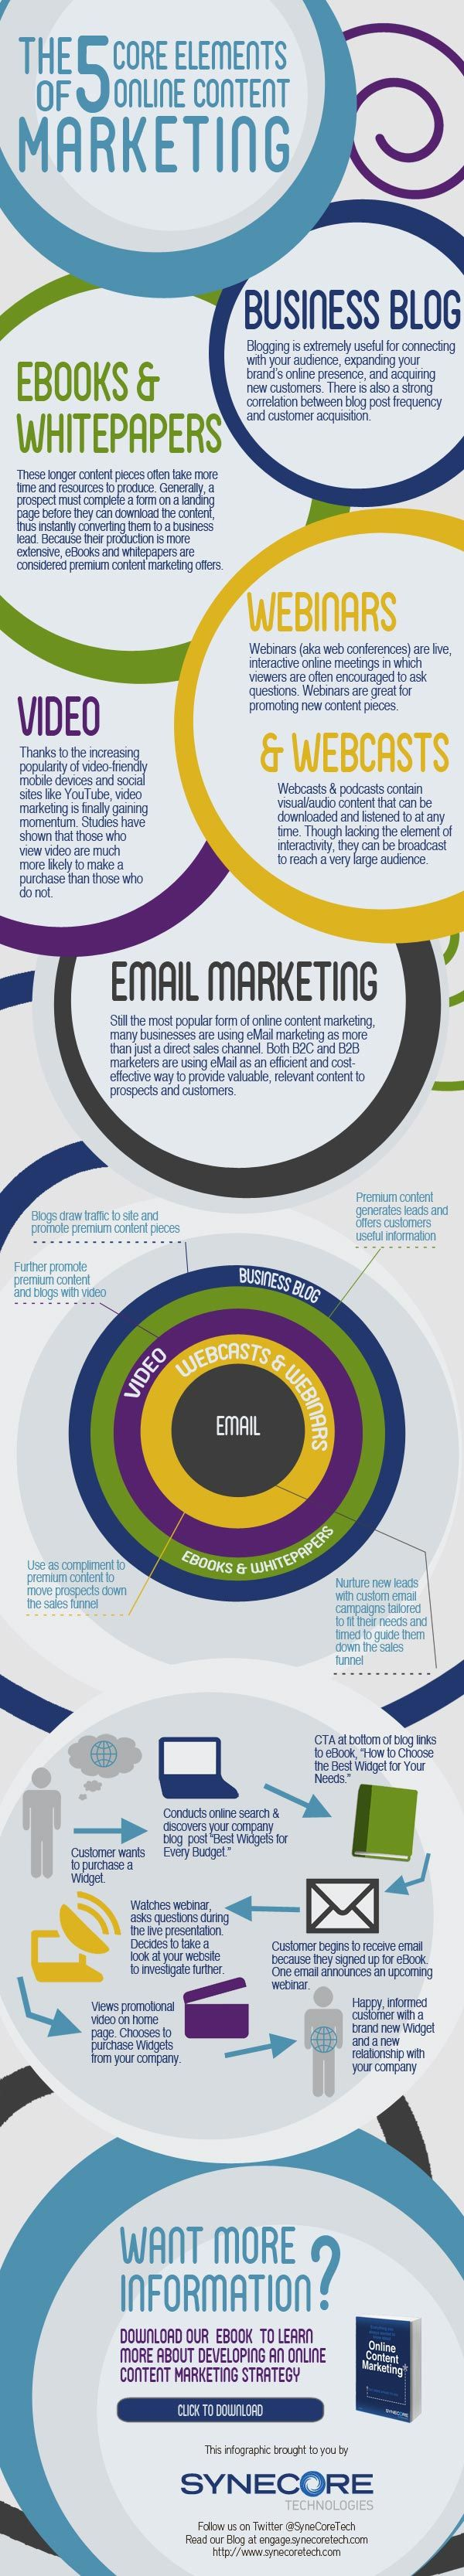 Content Marketing Lead Generation - iNFOGRAPHiCs MANiA ...